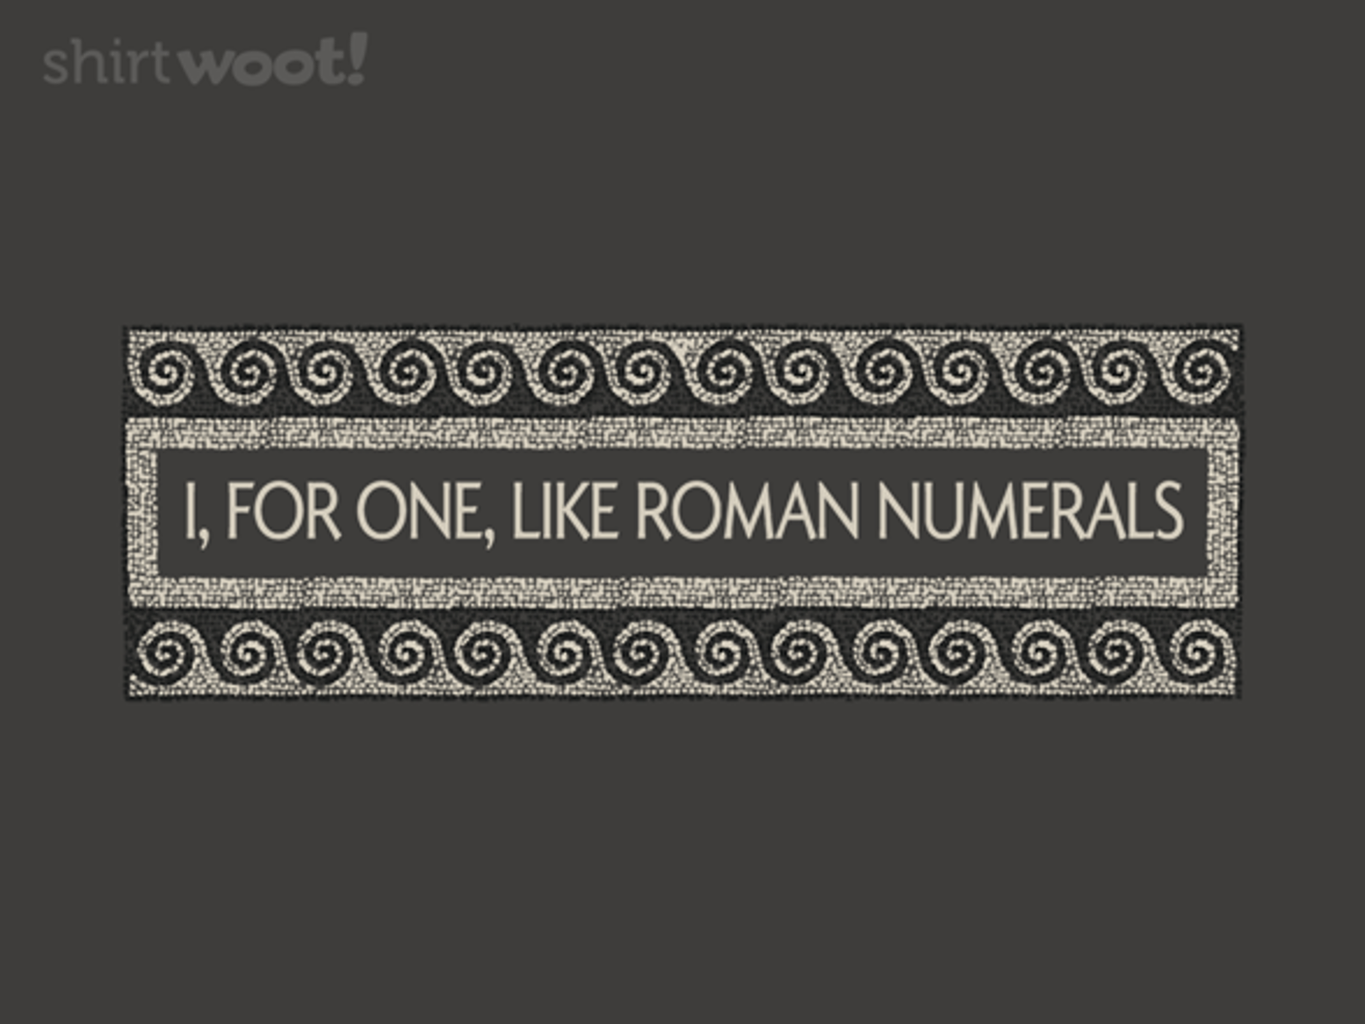 Woot!: I, For One, Like Roman Numerals - $15.00 + Free shipping